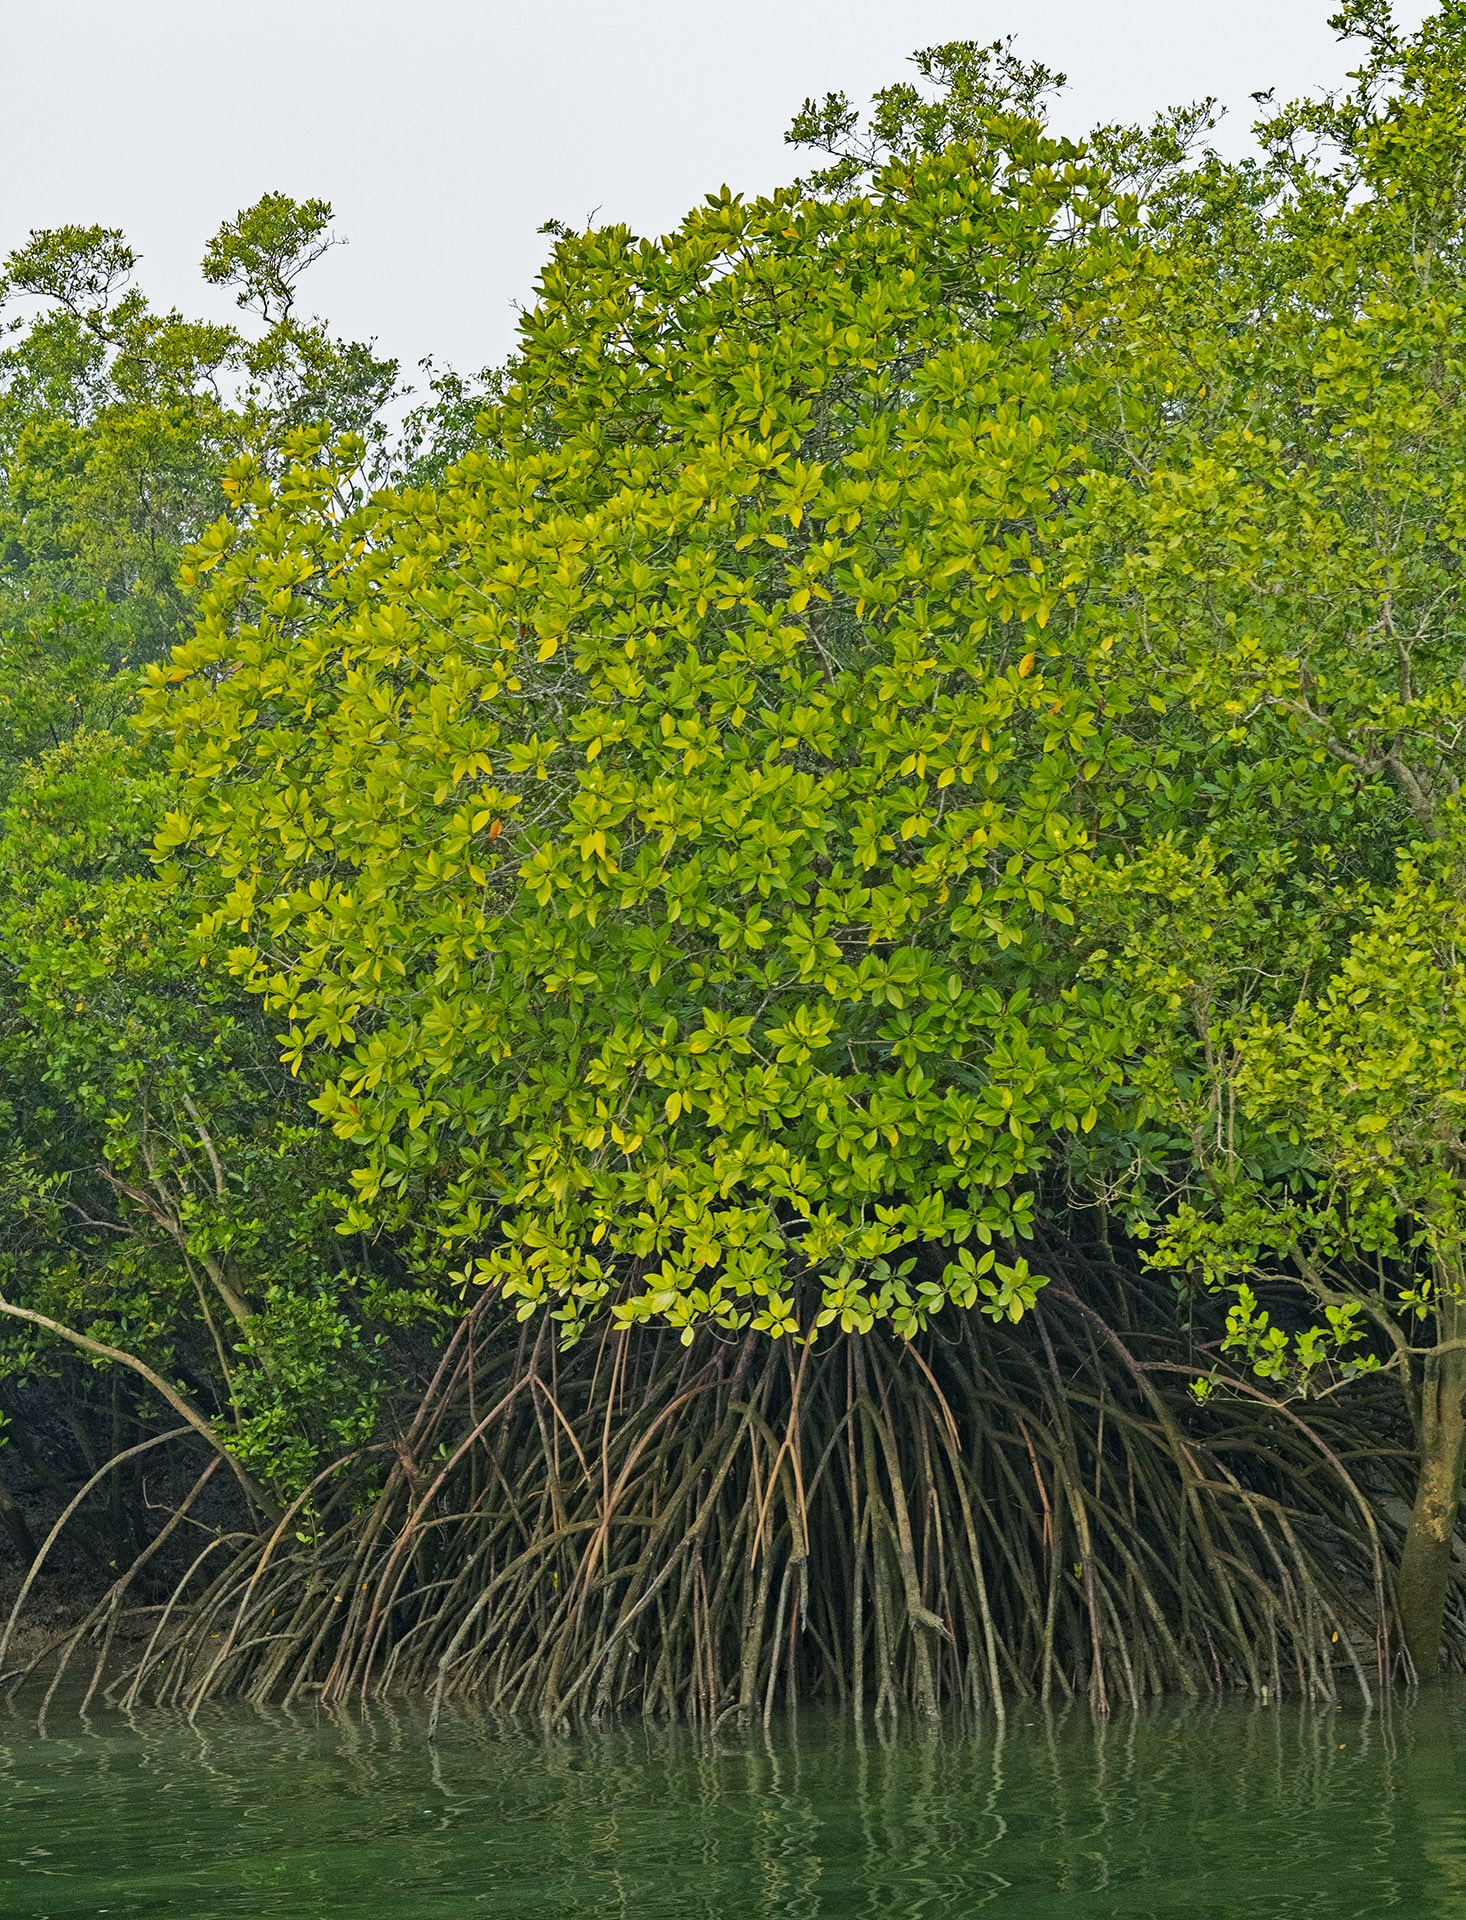 """The garjan is a mangrove on stilts. Its long, umbrella-shaped stilt roots provide a broad, solid base, often wider than the tree-top, helping keep it stable in the face of harsh tides and loose sand. Photo: Dhritiman Mukherjee  Goran or Ceriops decandra is supported by a network of roots that spreads horizontally below the surface. At irregular intervals they stick out and then loop back into the soil, resembling wobbly, mangled knees. These aerial """"knee roots"""" help the entire underground root system breathe. Cover photo: Dhritiman Mukherjee"""